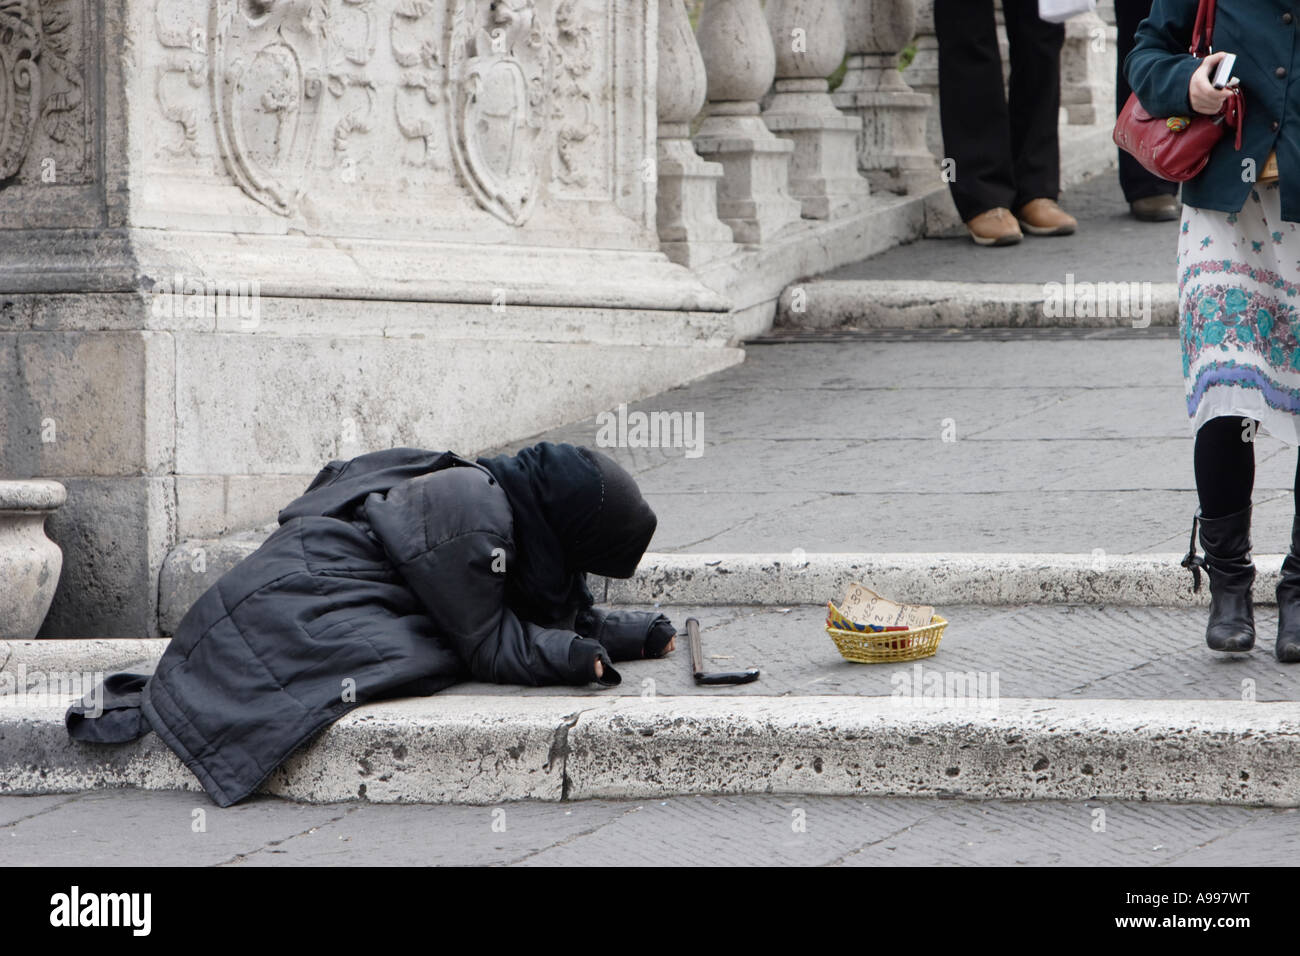 Beggar on the steps to the Palazzo dei Conservatori on Capitol hill in Rome, Italy - Stock Image